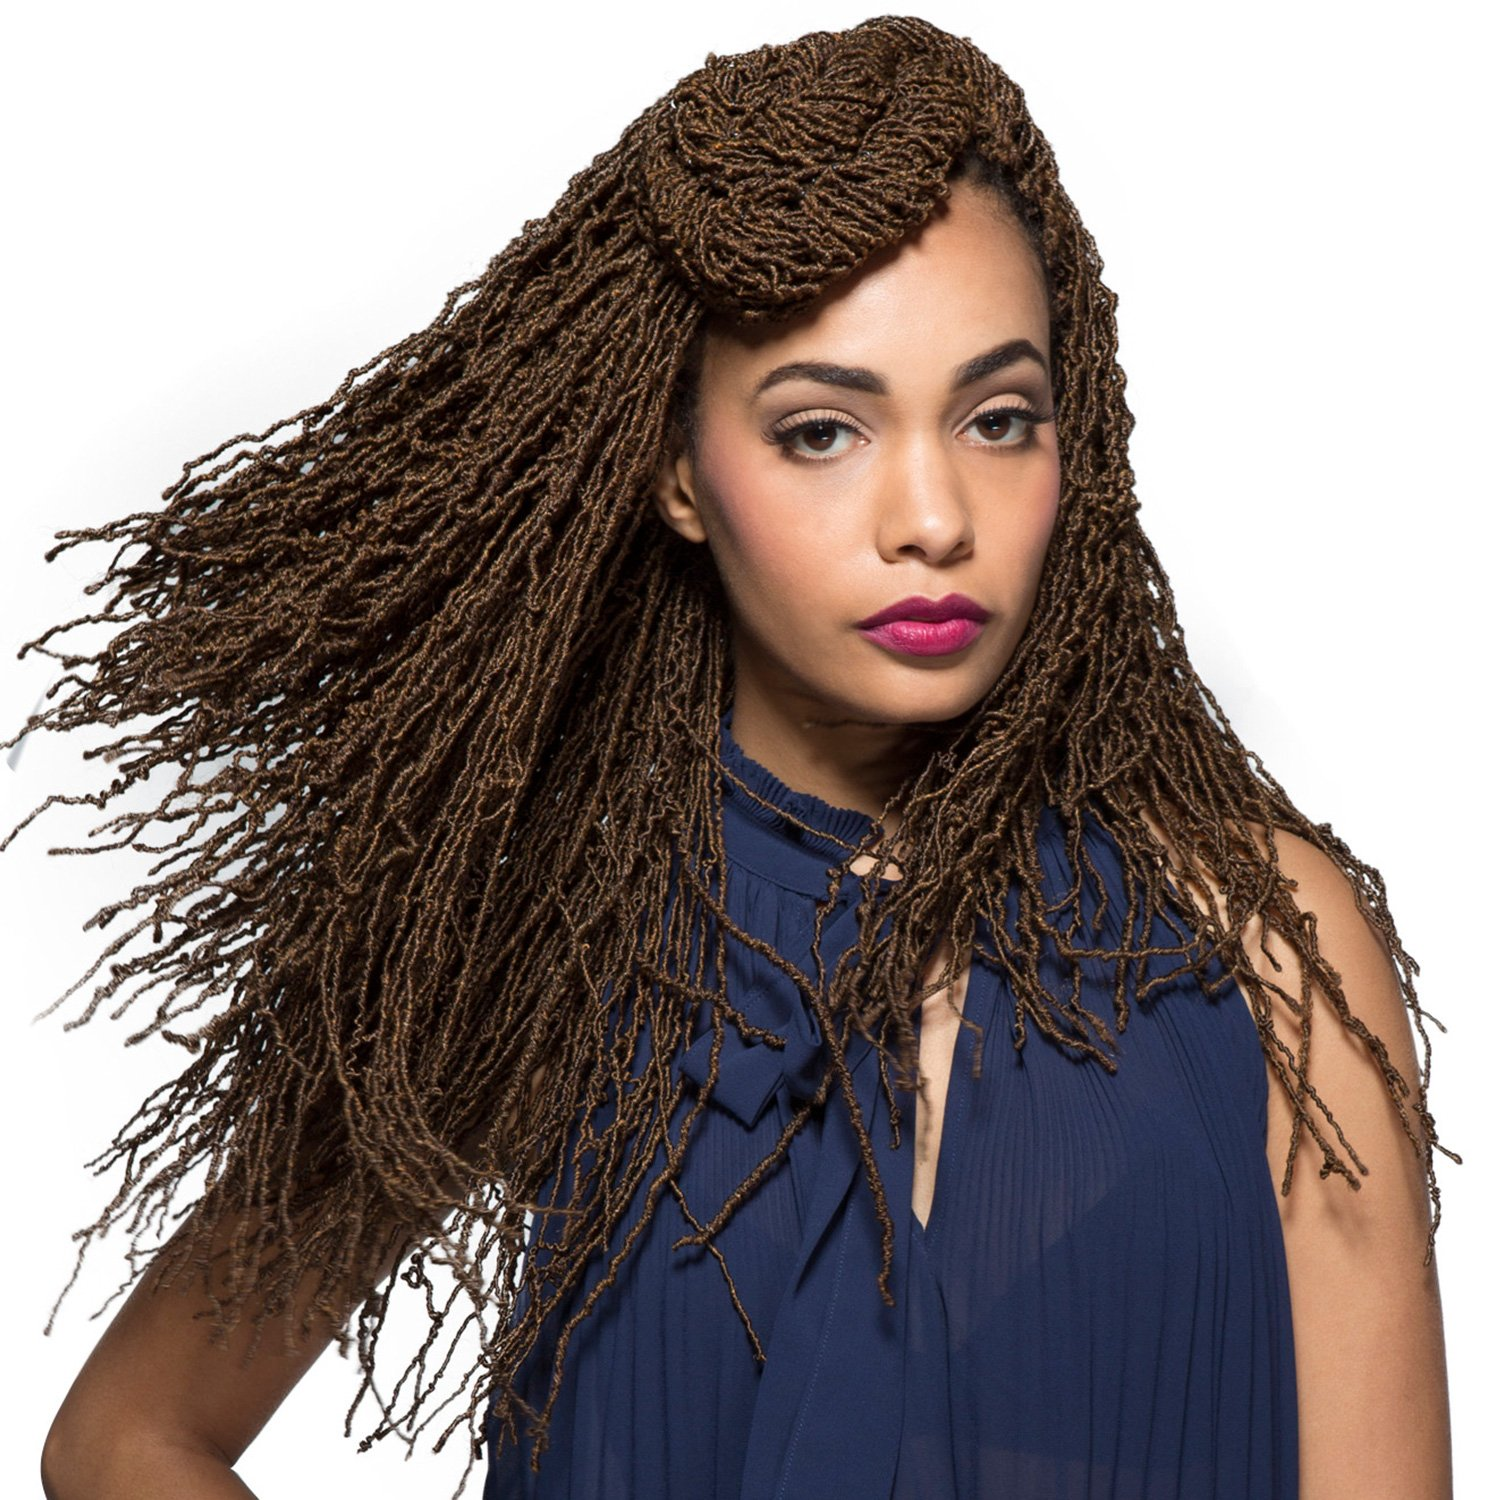 Bobbi boss braiding hair - Amazon Com Bobbi Boss Synthetic Hair Crochet Braids African Roots Braid Collection Micro Locs 18 6 Pack 1b Beauty